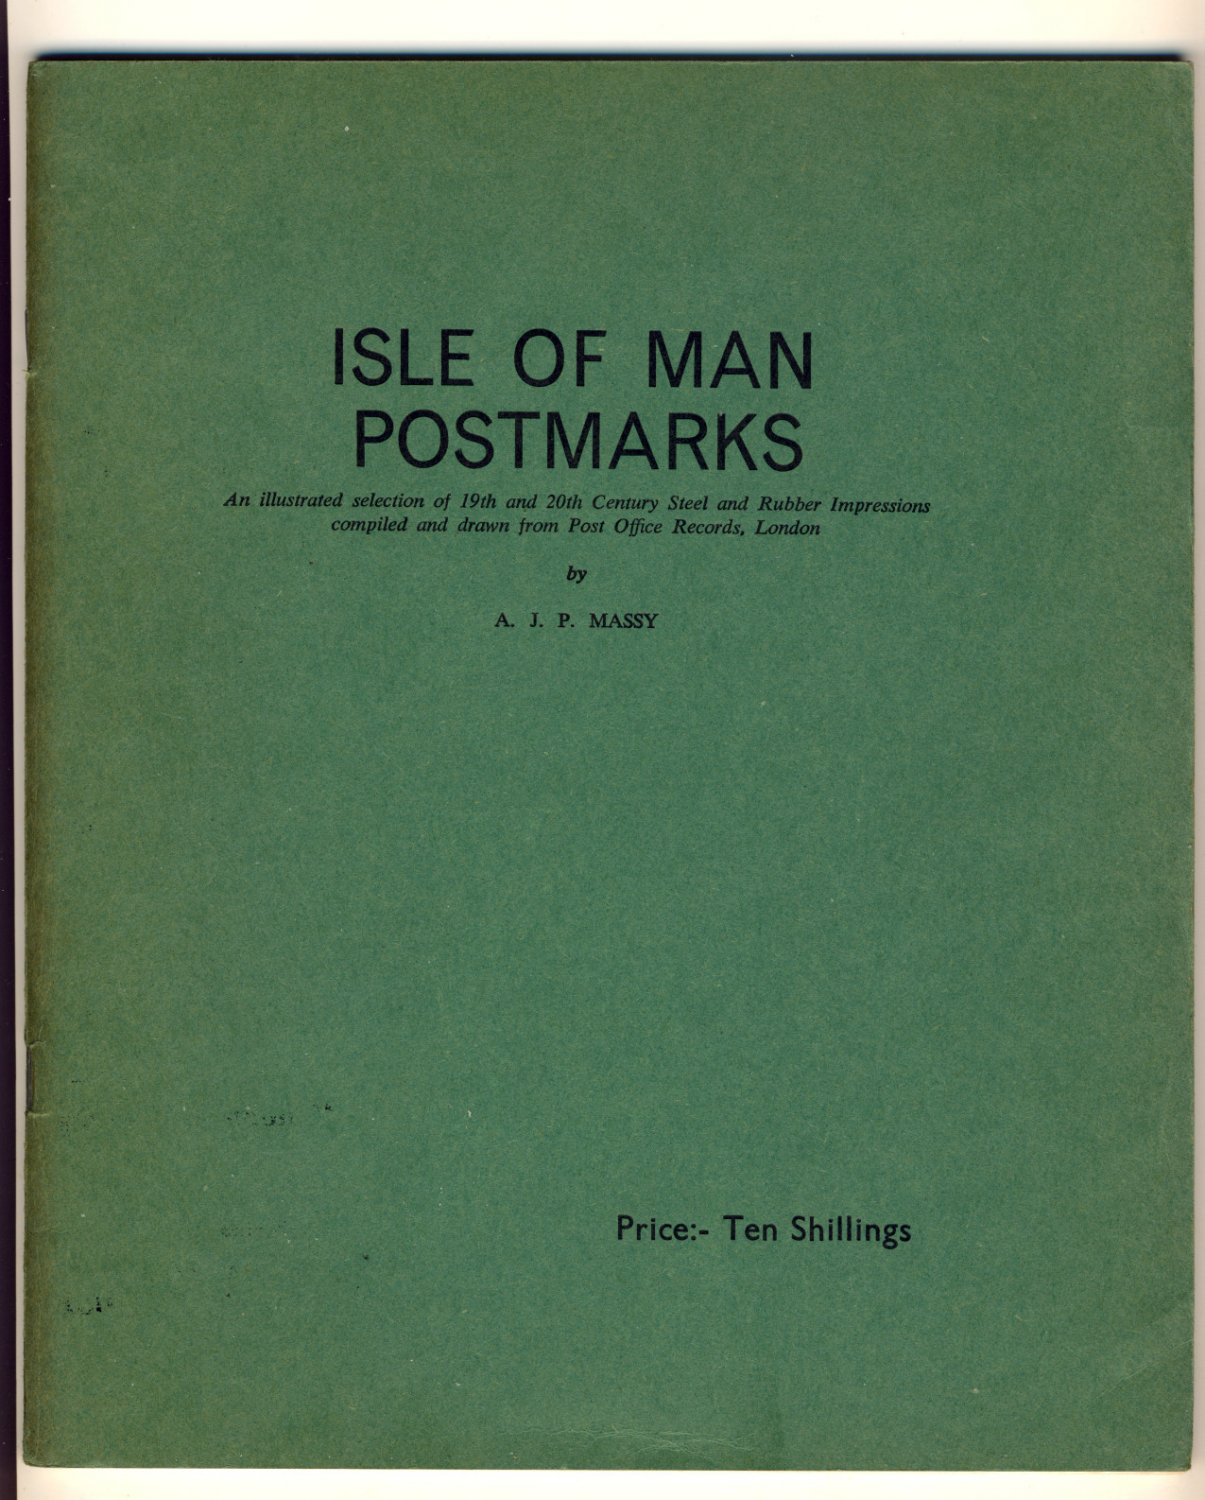 Isle of Man Postmarks Pt 2 & 3 by AJP Massy Old Postal Markings Illustrated from Post Office Records